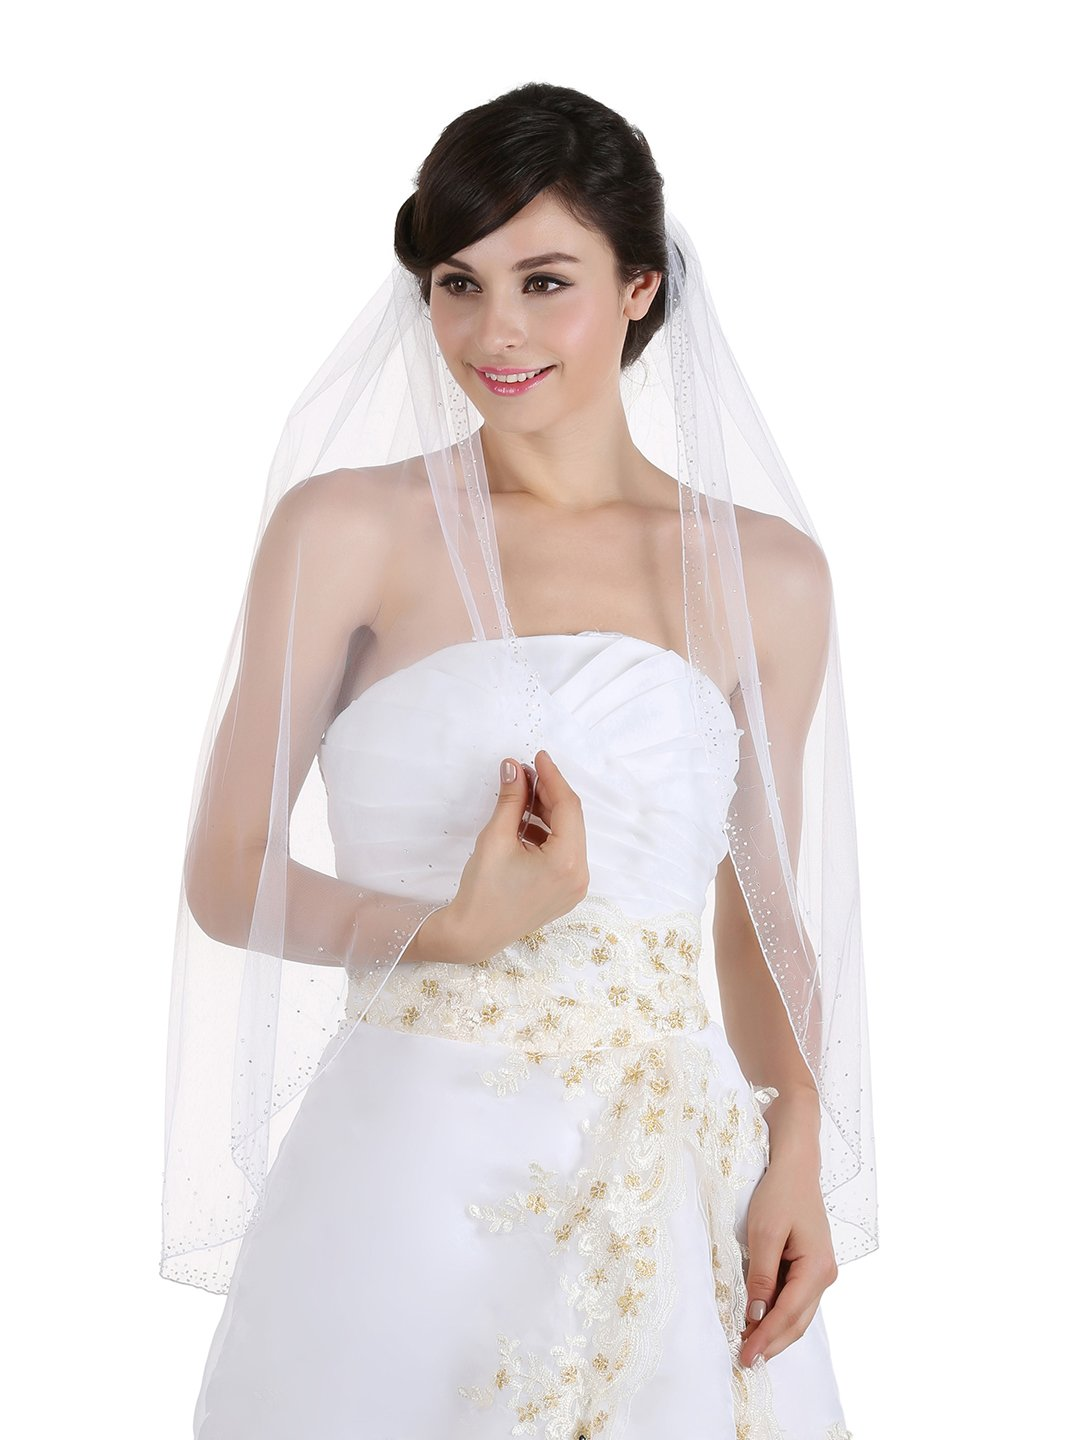 1T 1 Tier Wide Crystal Beaded Edge Bridal Veil - Ivory Elbow Length 30'' V358